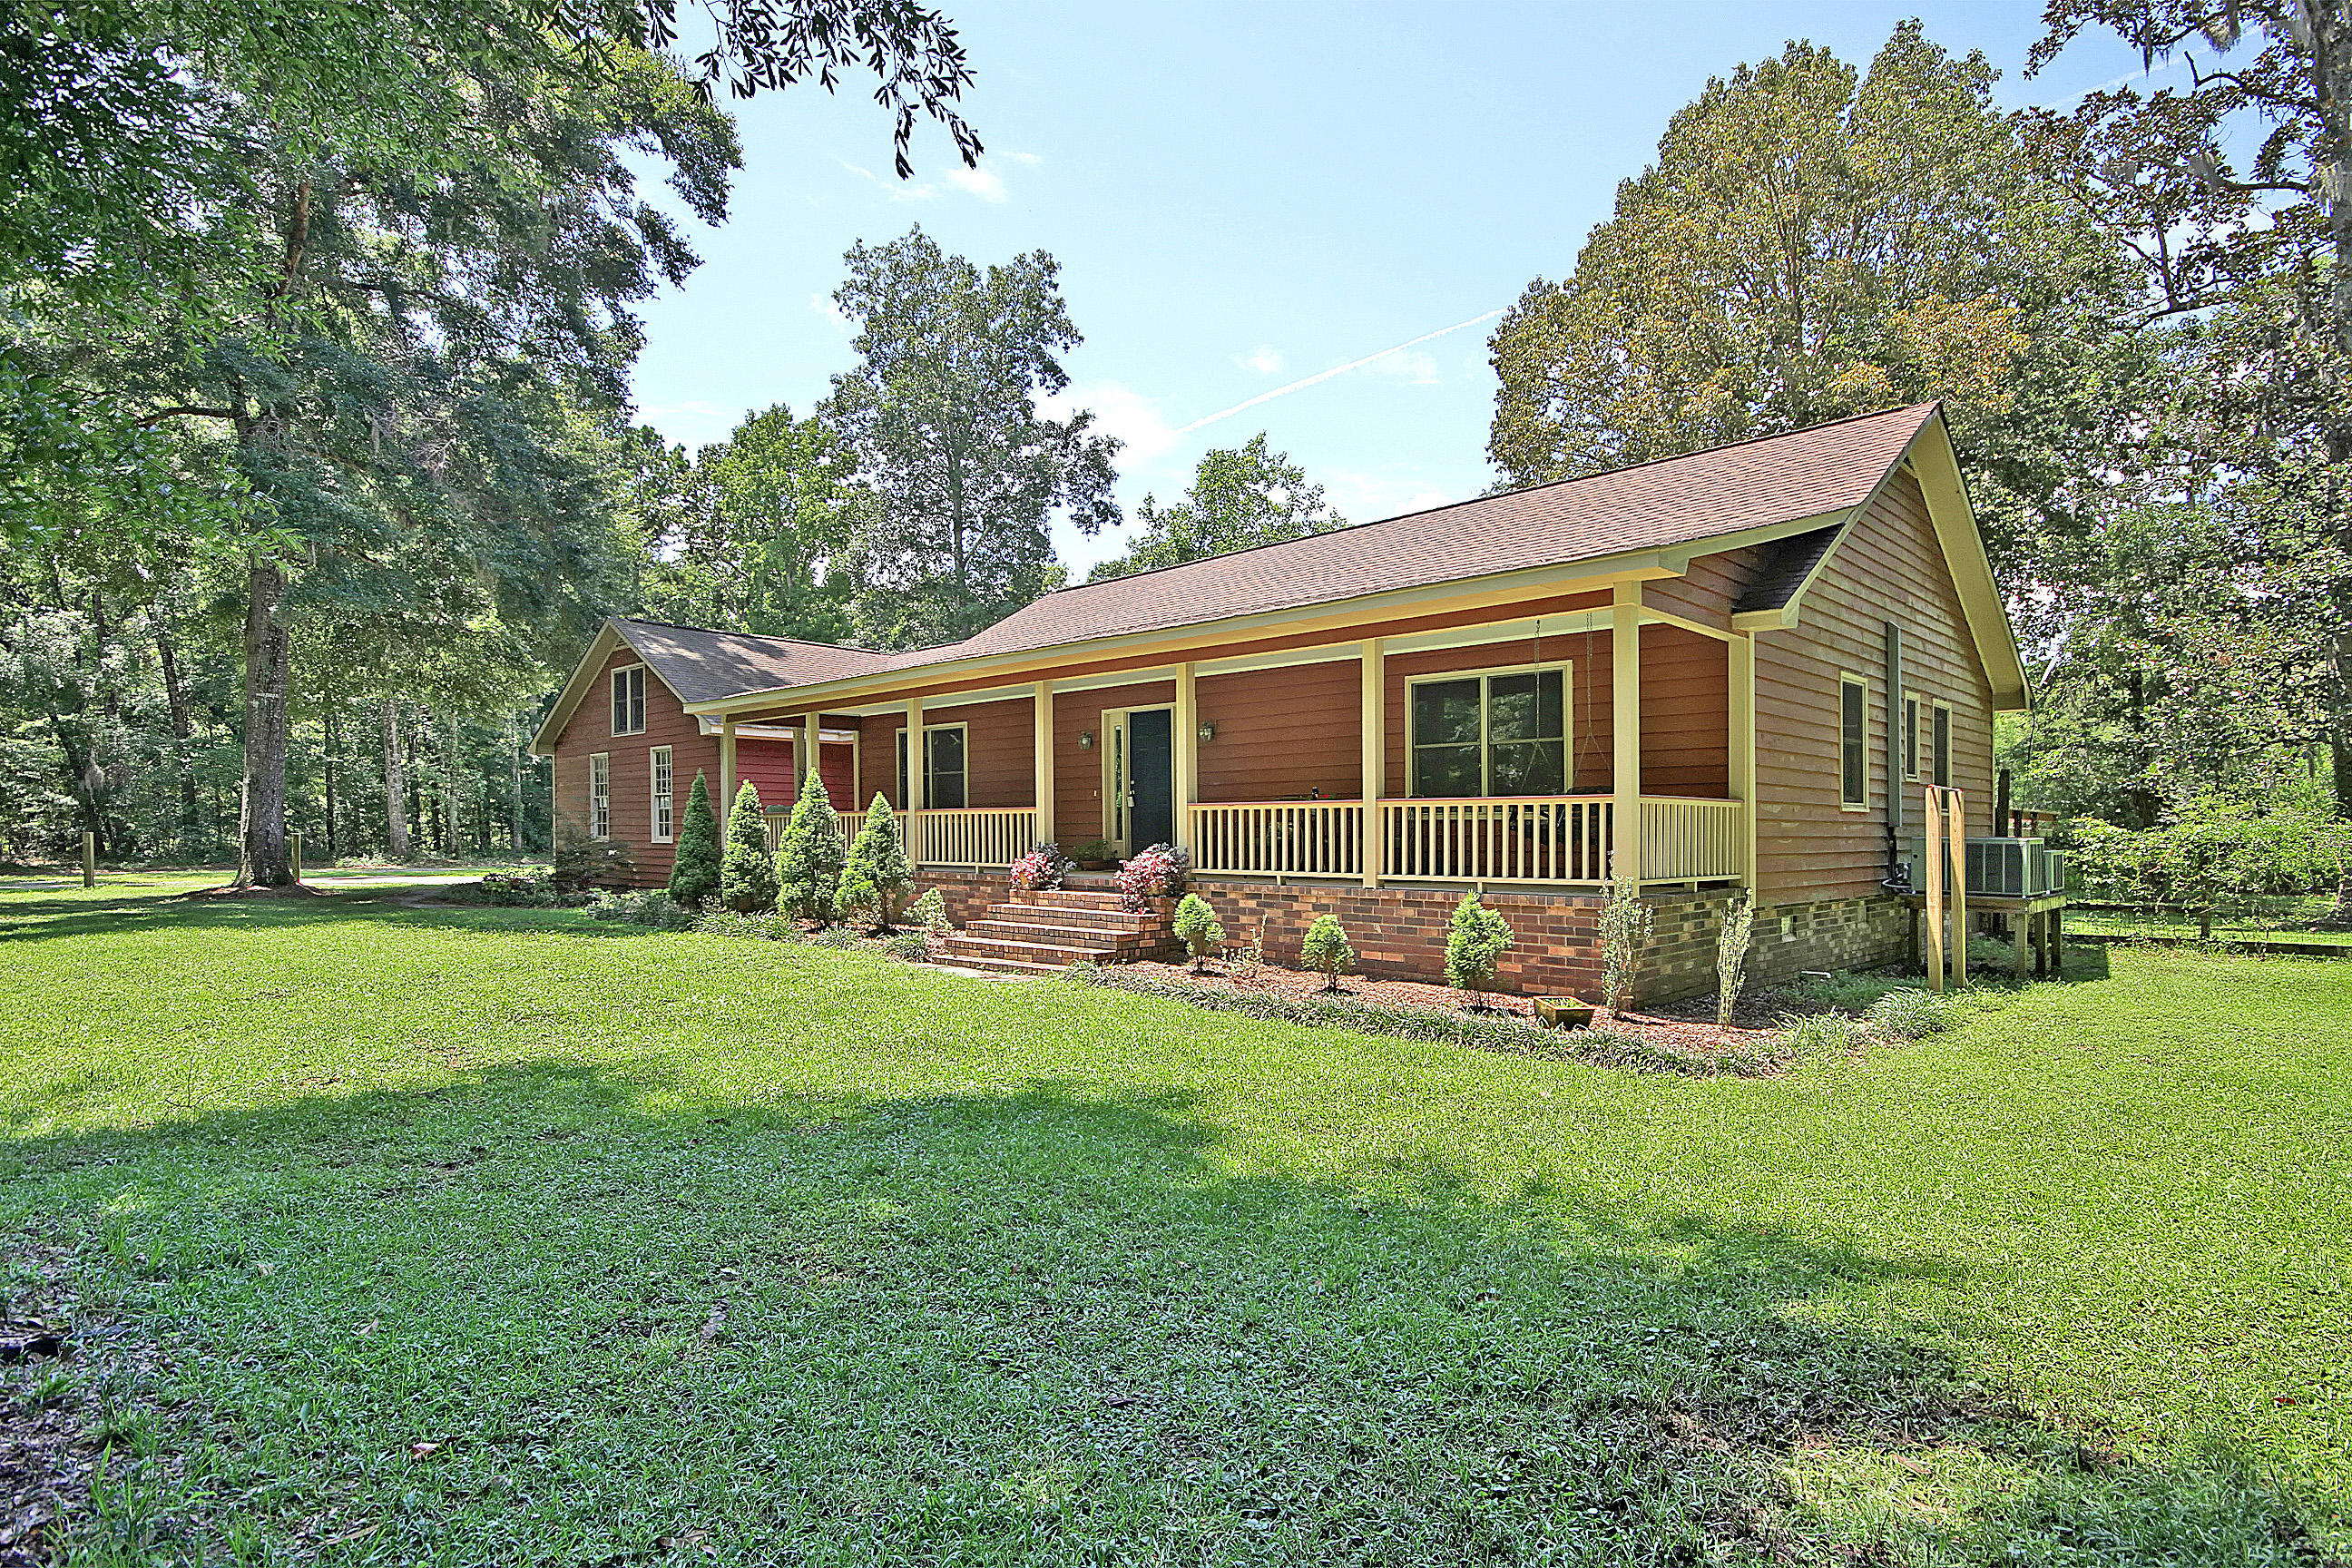 3866-1 Humbert Road Johns Island, SC 29455